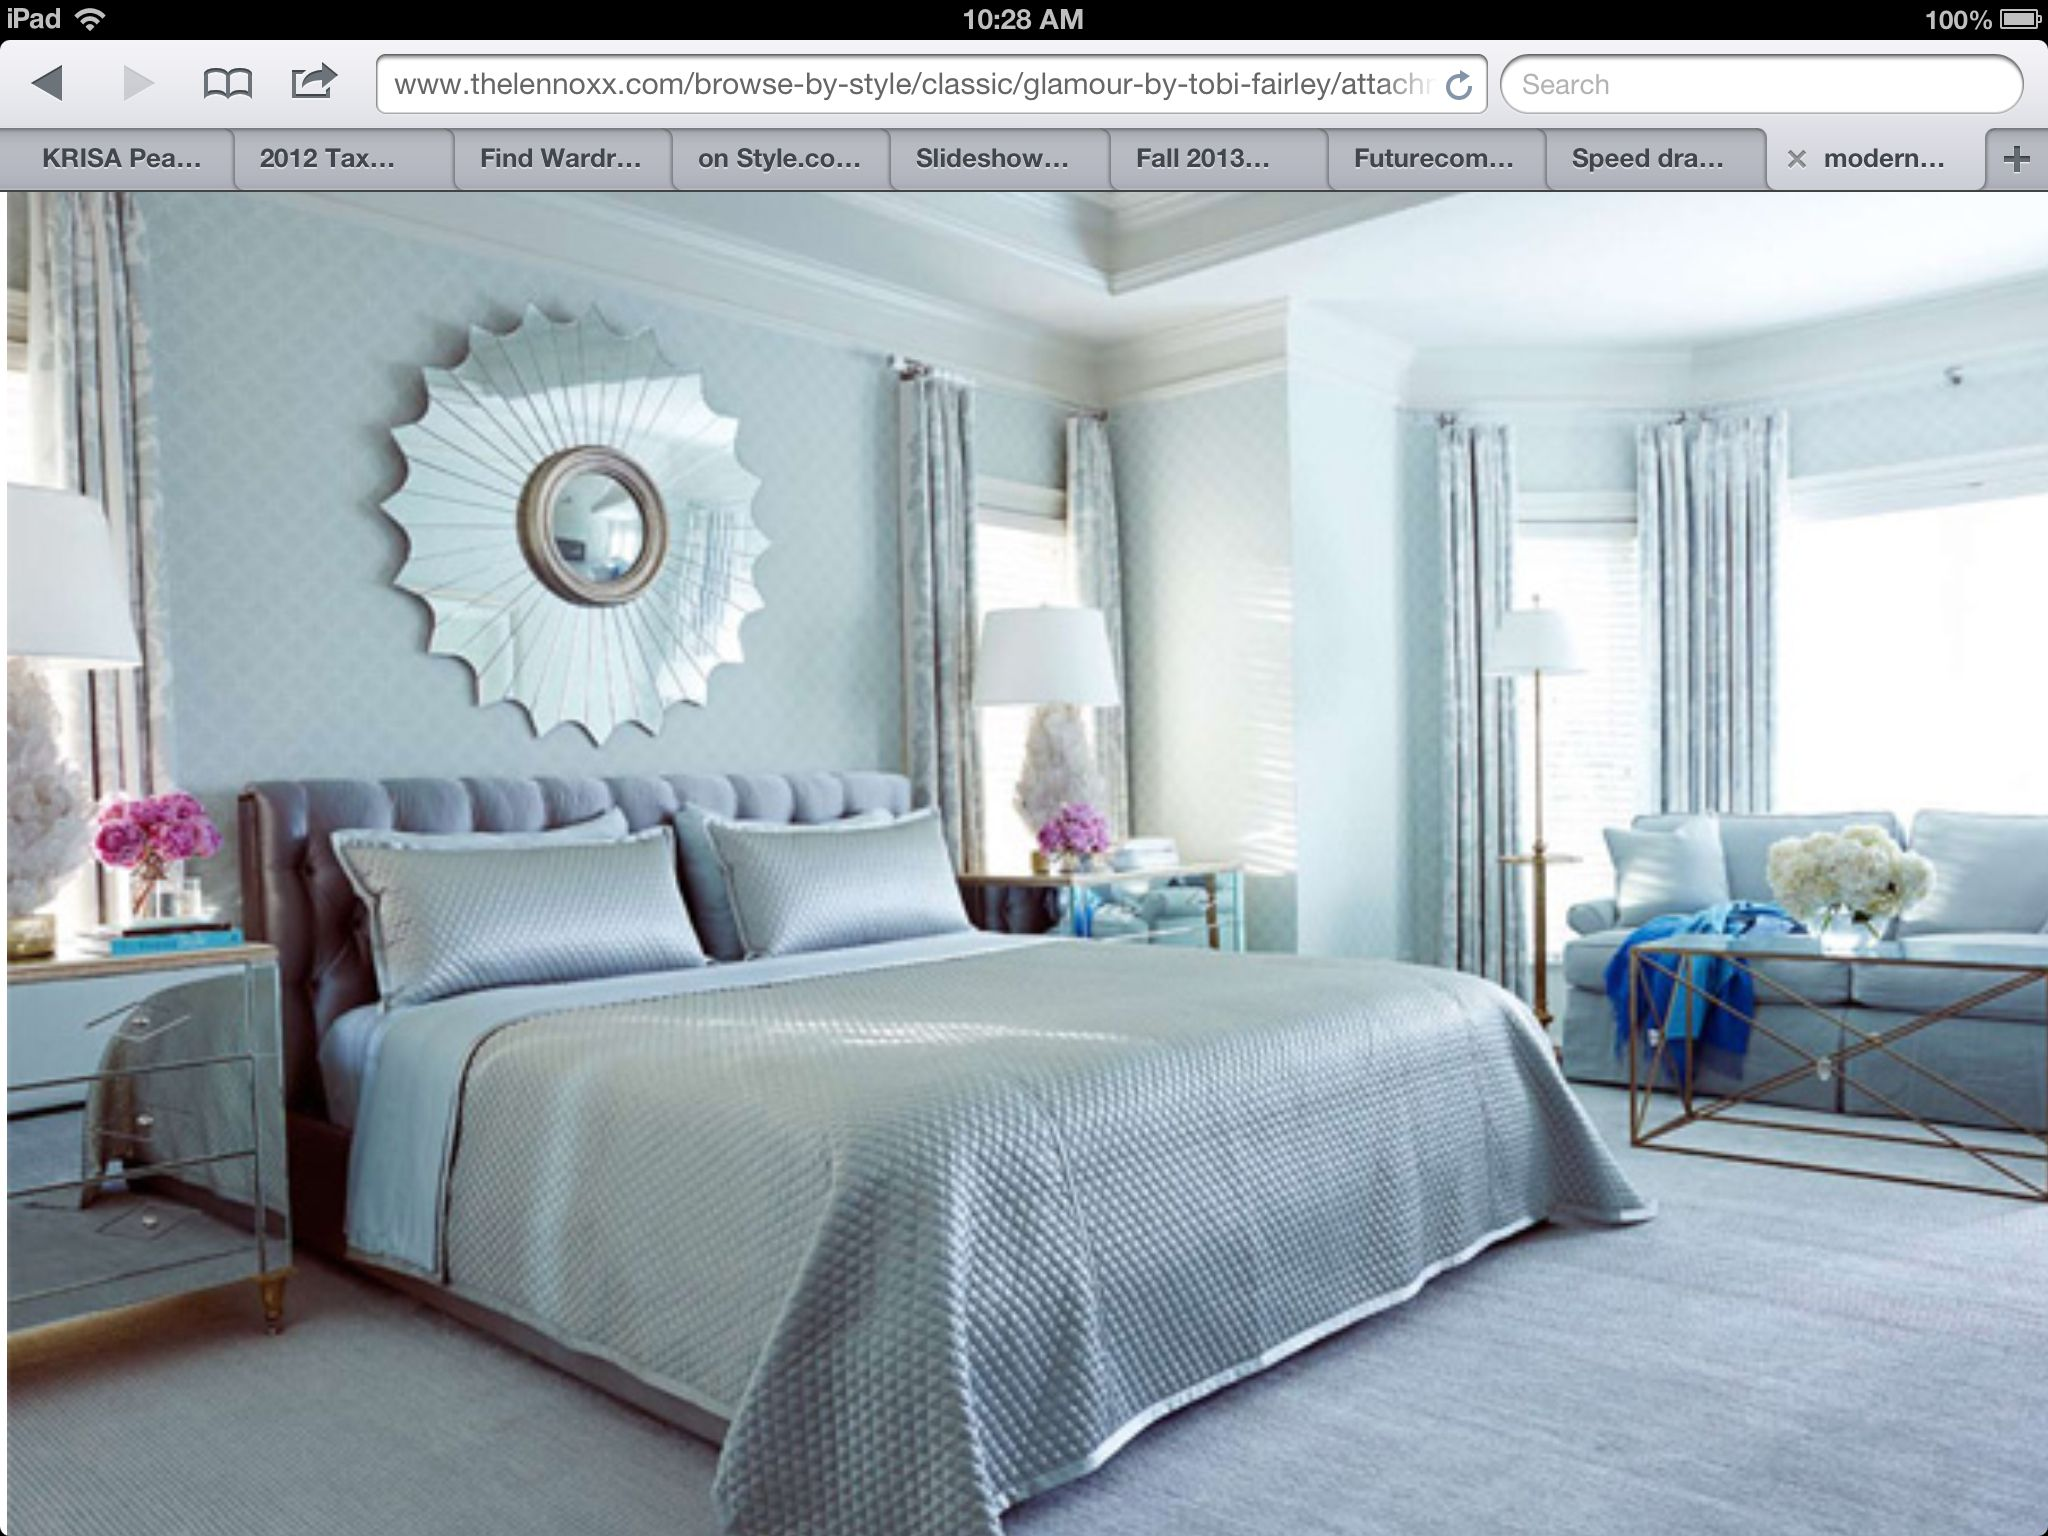 bedrooms bedroom carpet girls bedroom silver bedroom decor forward